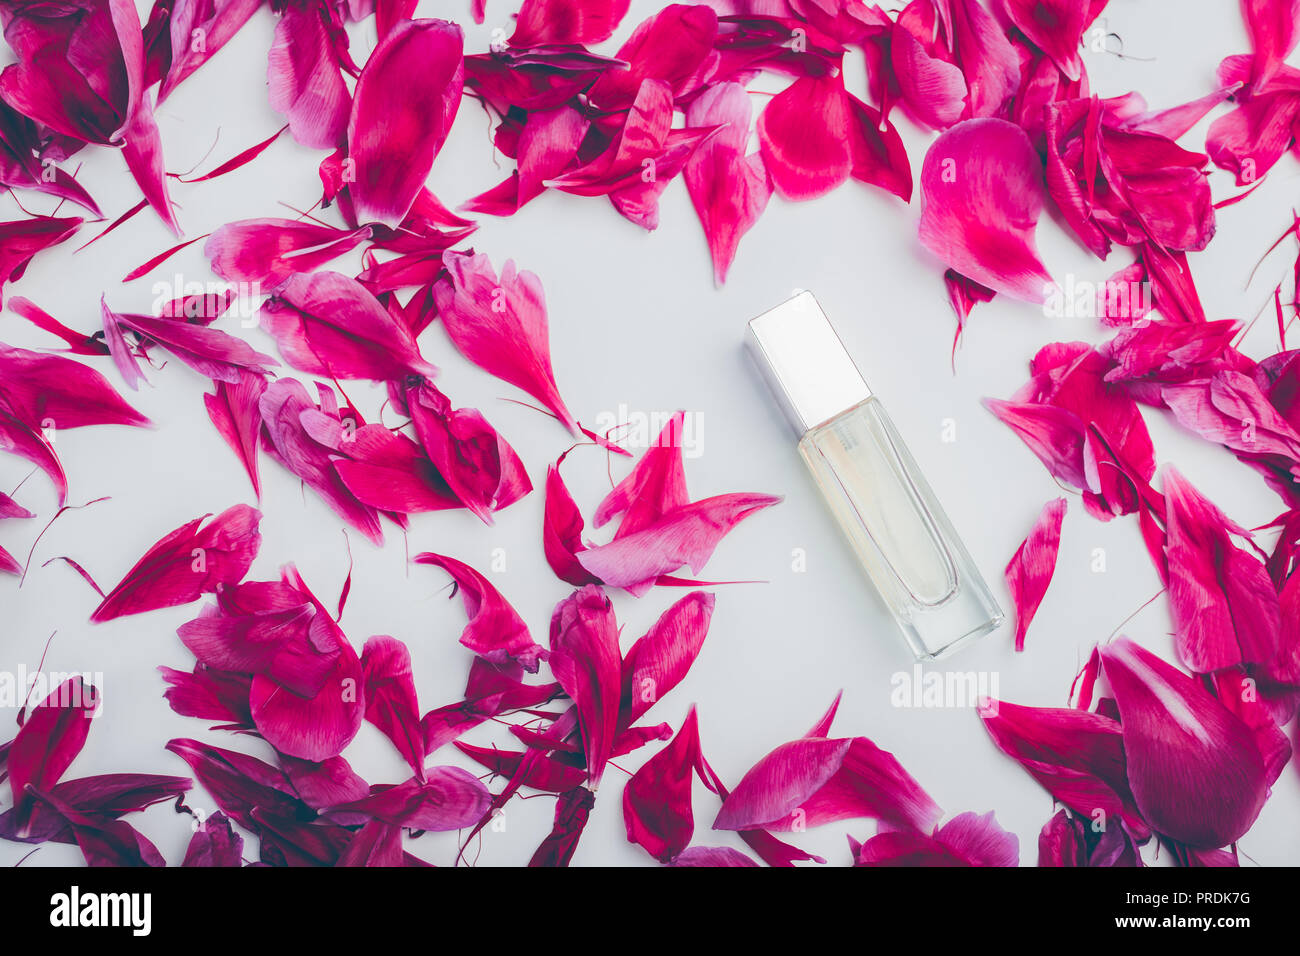 Bottle of perfume with pink peony petals on white background flower bottle of perfume with pink peony petals on white background flower fragrance organic cosmetics natural ingredients top view mightylinksfo